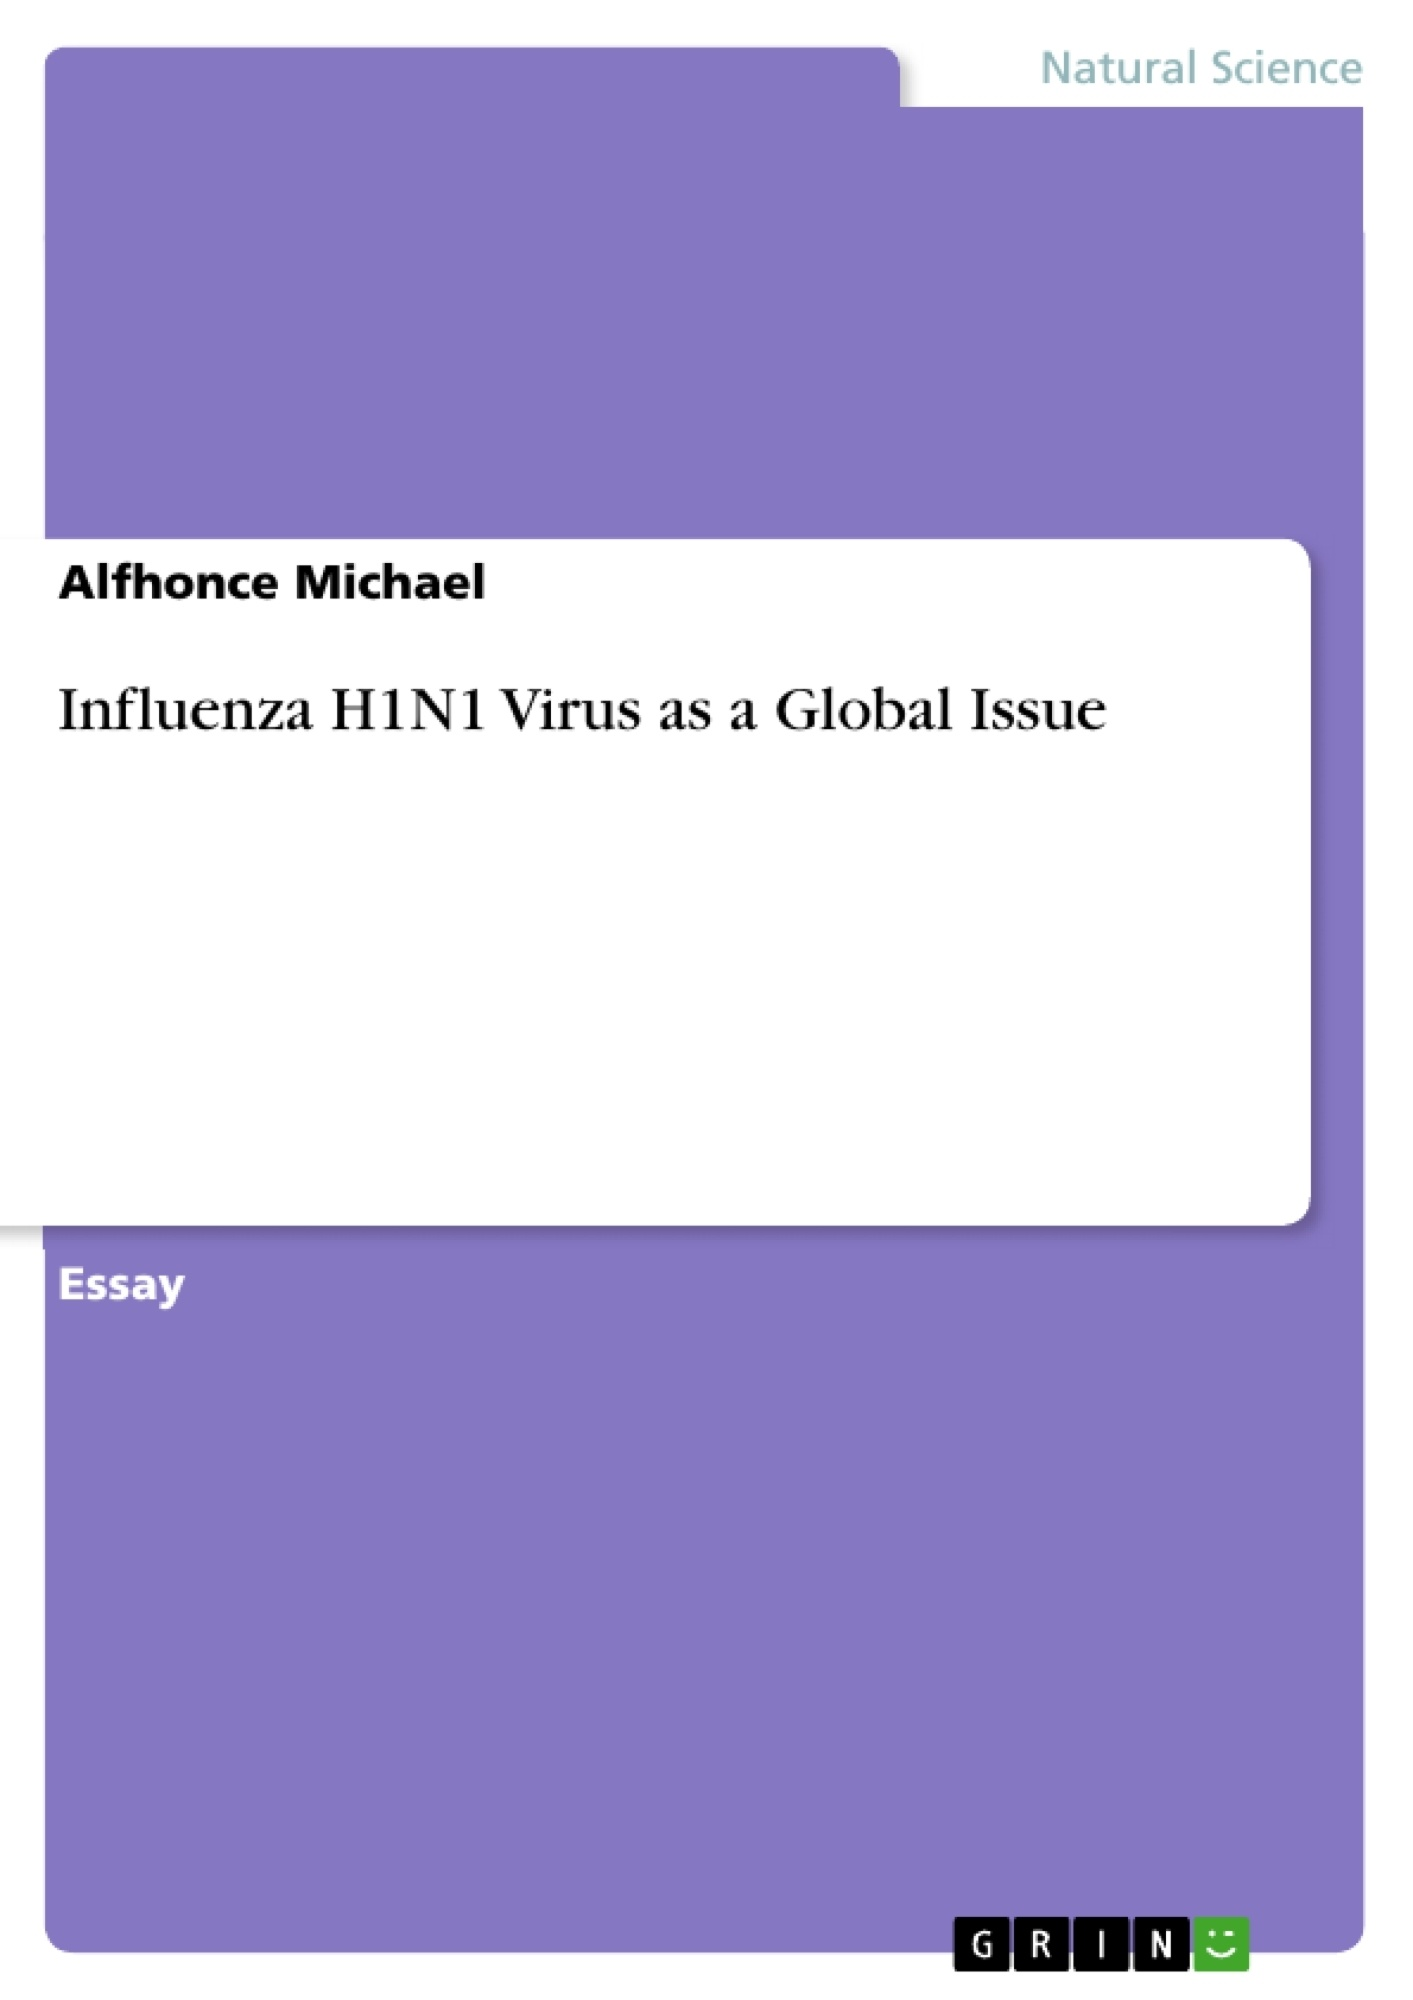 Title: Influenza H1N1 Virus as a Global Issue